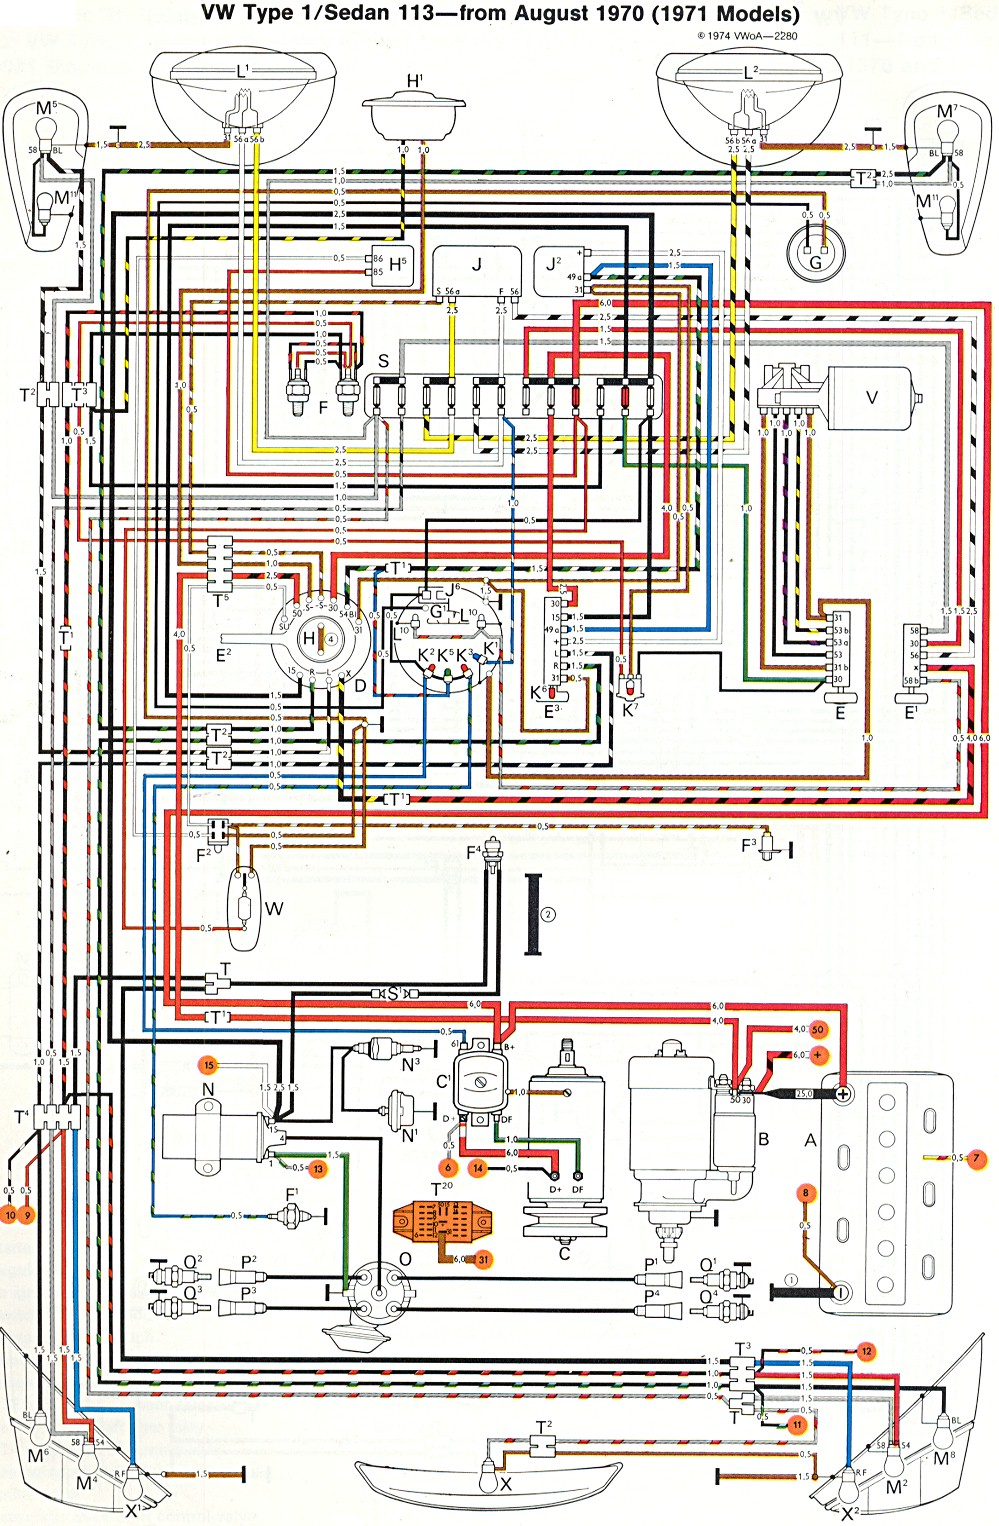 bug_super_71 1971 super beetle wiring diagram thegoldenbug com vw bug wiring diagram at readyjetset.co